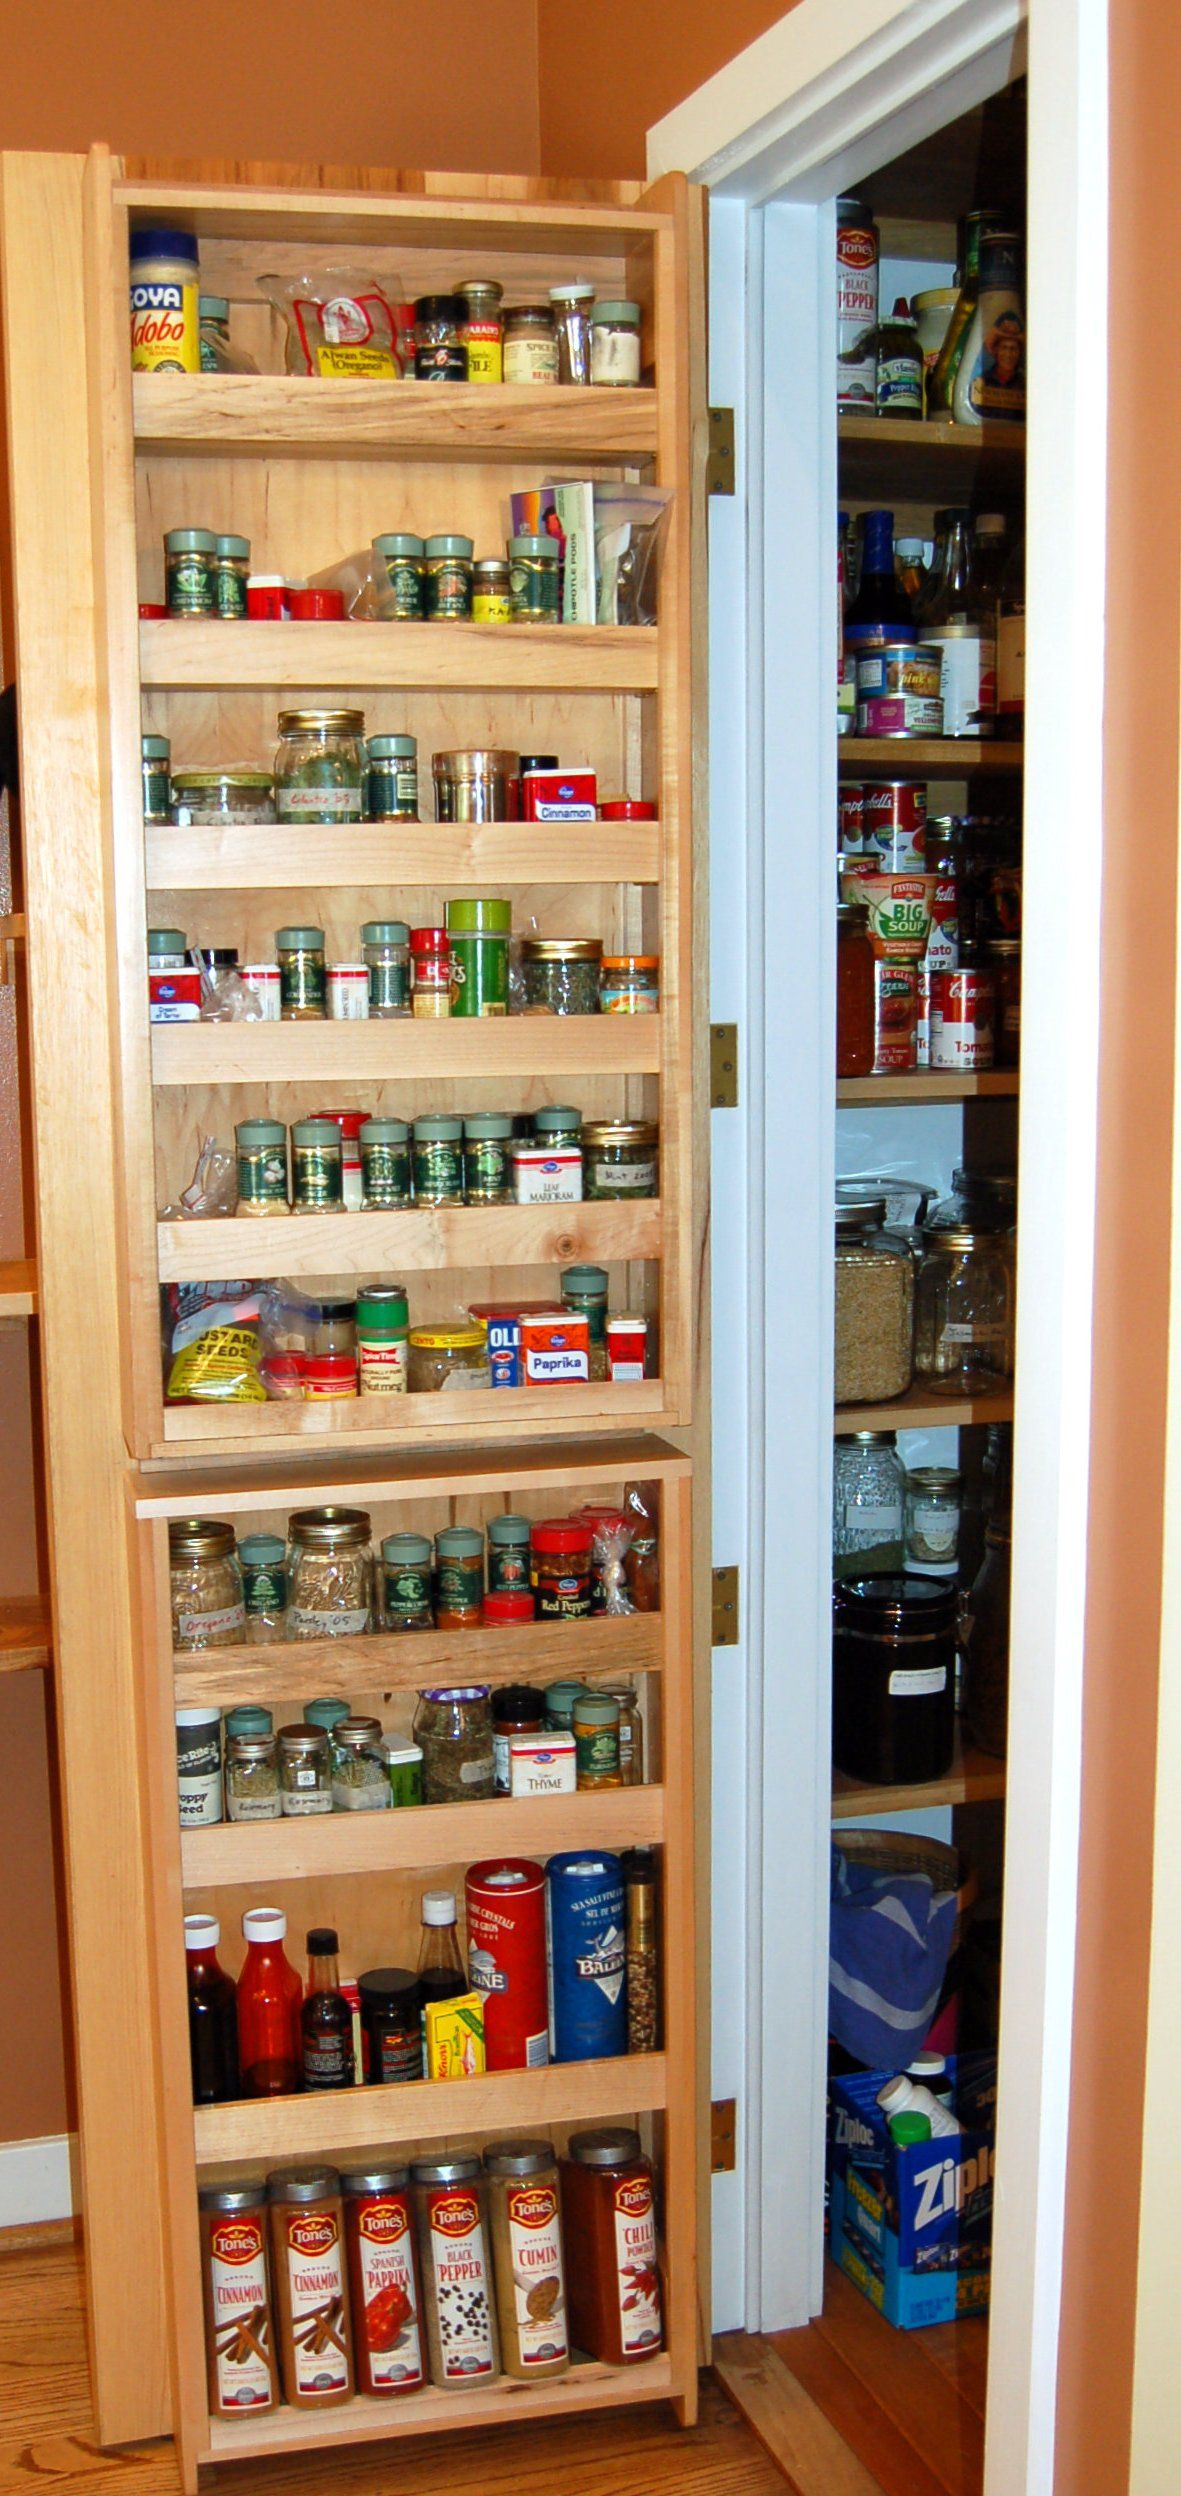 A Spice Rack On The Inside Of The Pantry Door Keeps Kitchen Spices